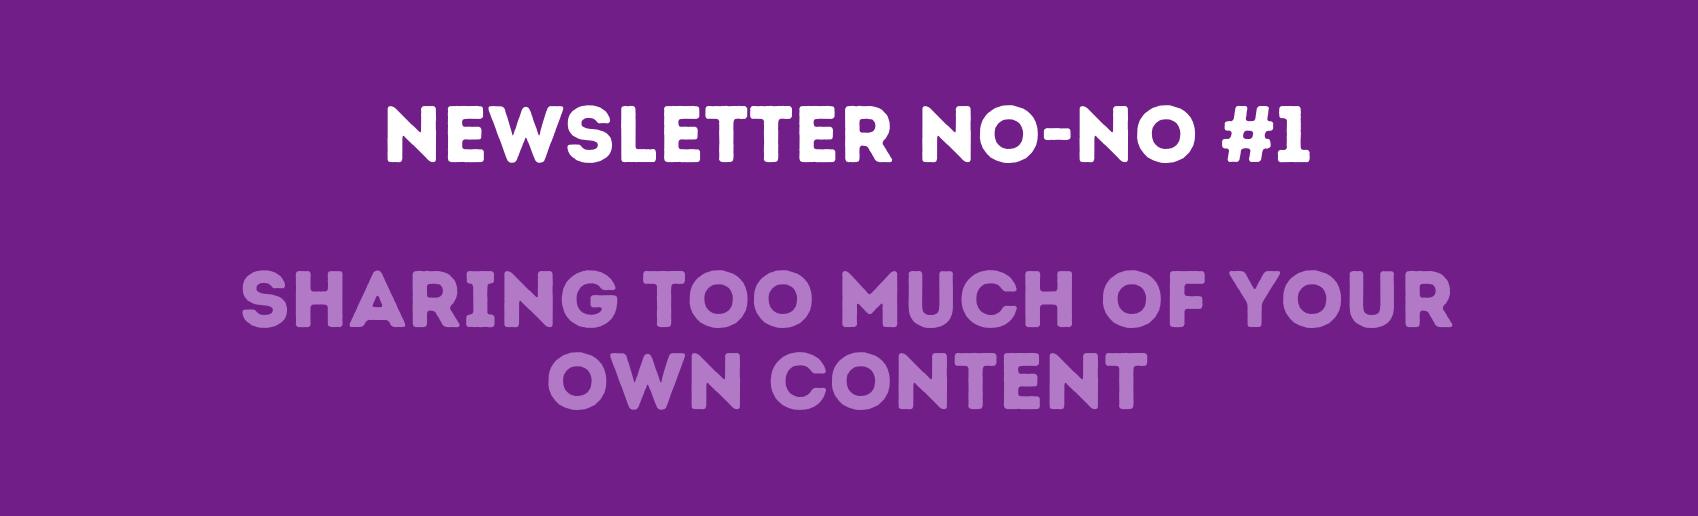 Newsletter No-no #1: Sharing too much of your own content